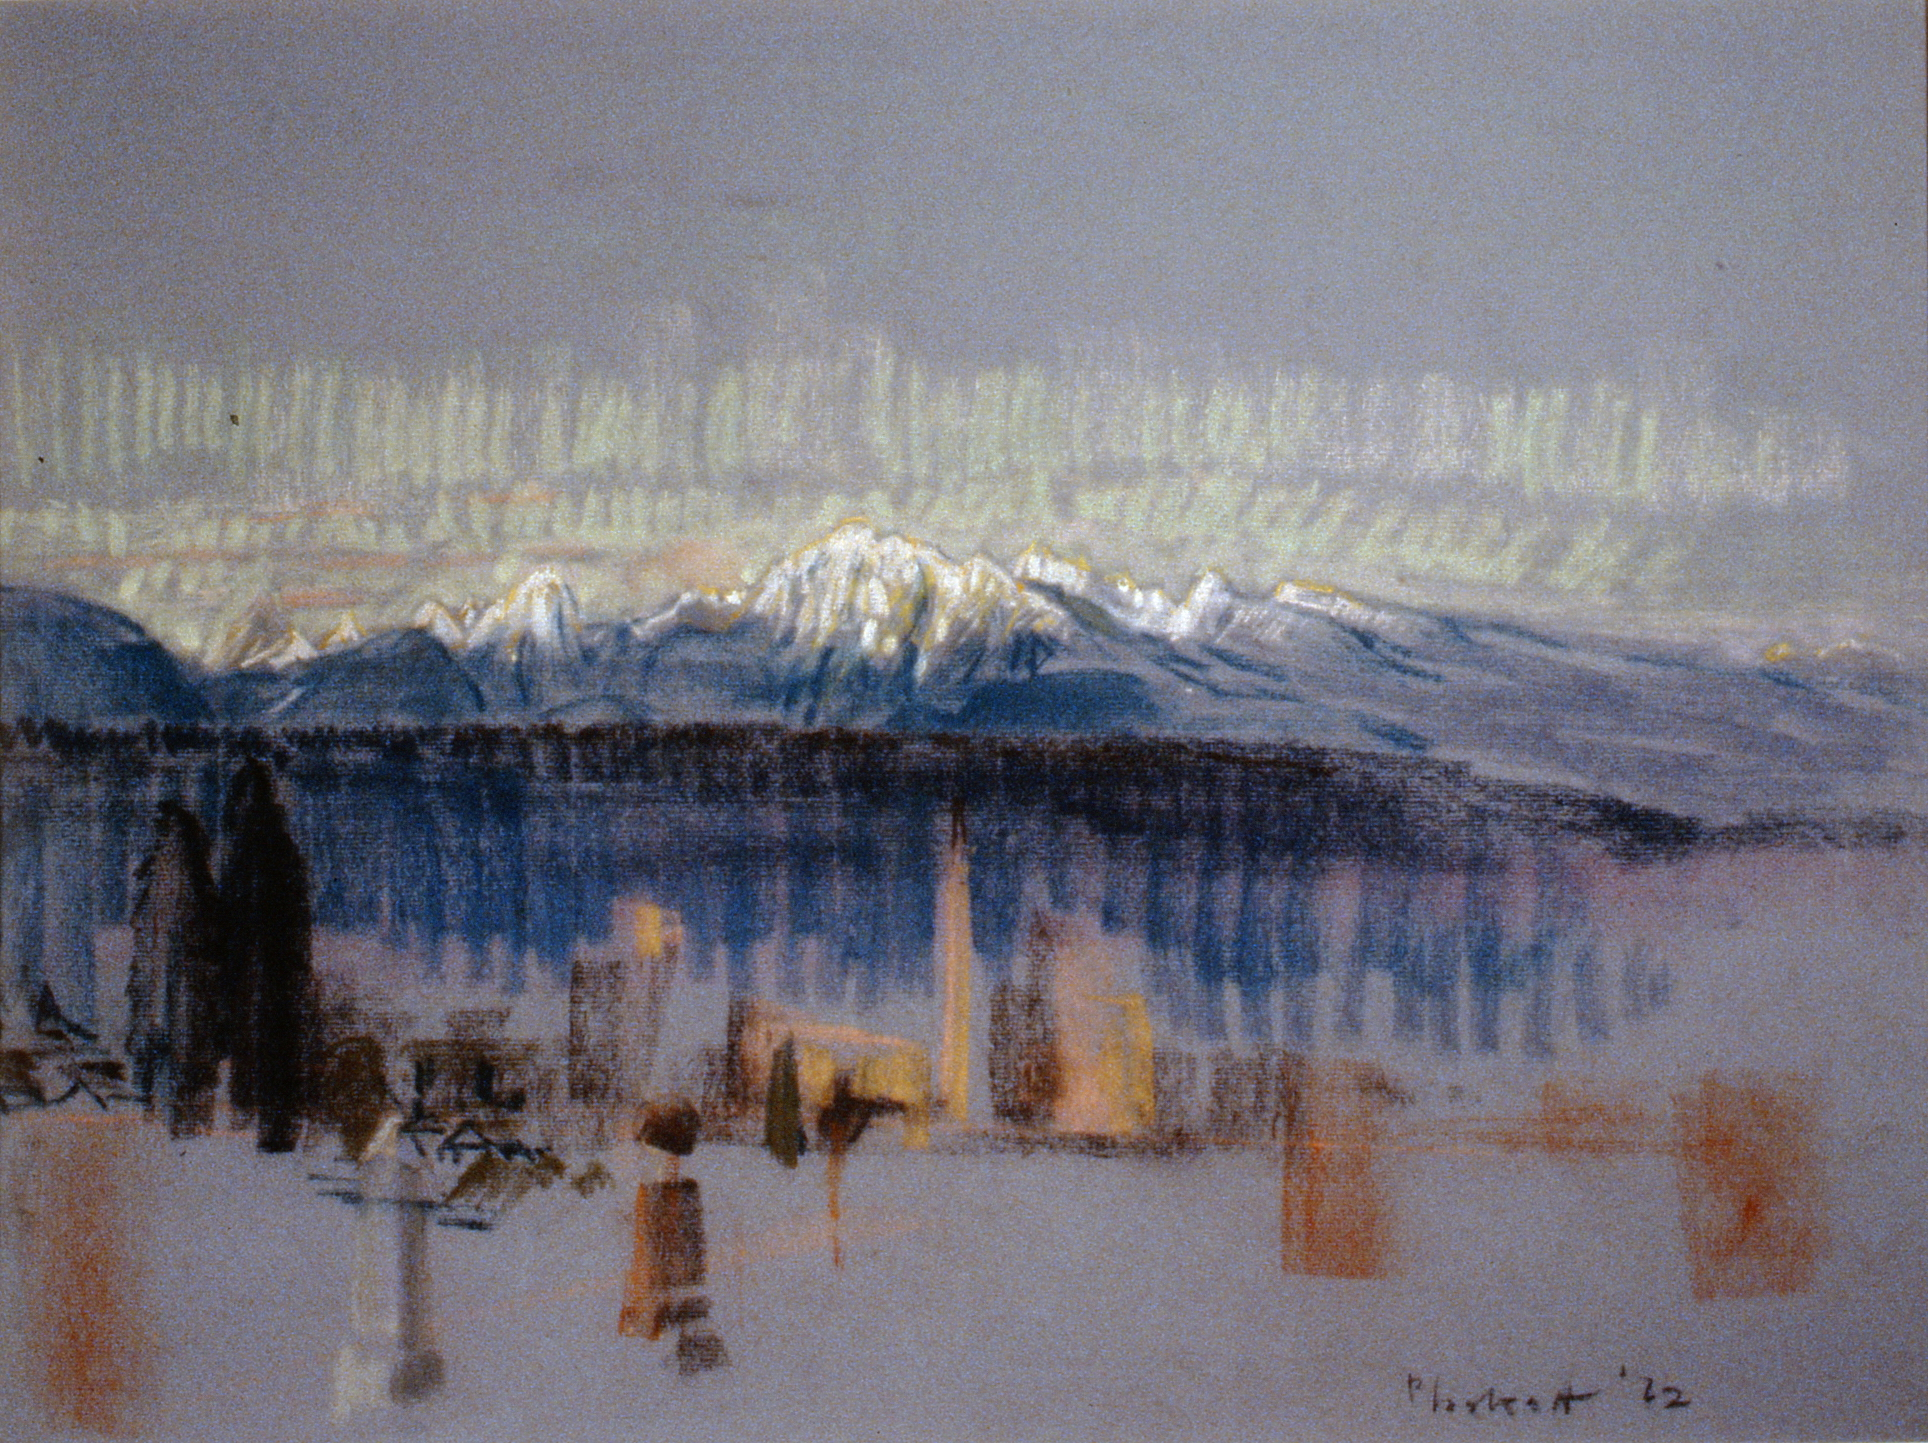 Graveyard with Mountains , 1962, Joseph Plaskett, pastel on paper, 1994.07.01